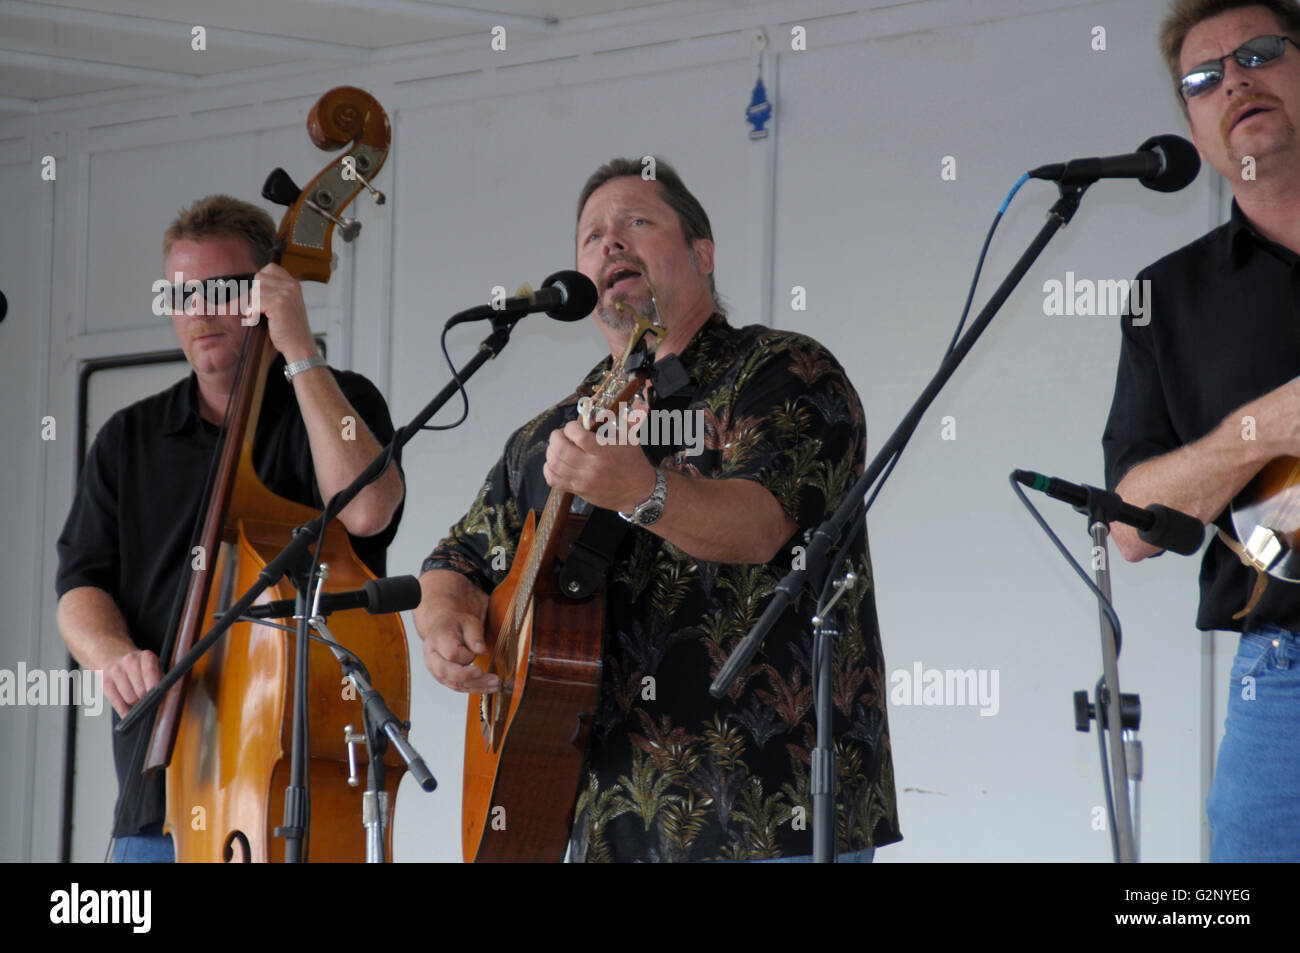 One of the bands Randy Waller and the Country Gentlemen play at the bluegrass festival in Deale, Maryland - Stock Image